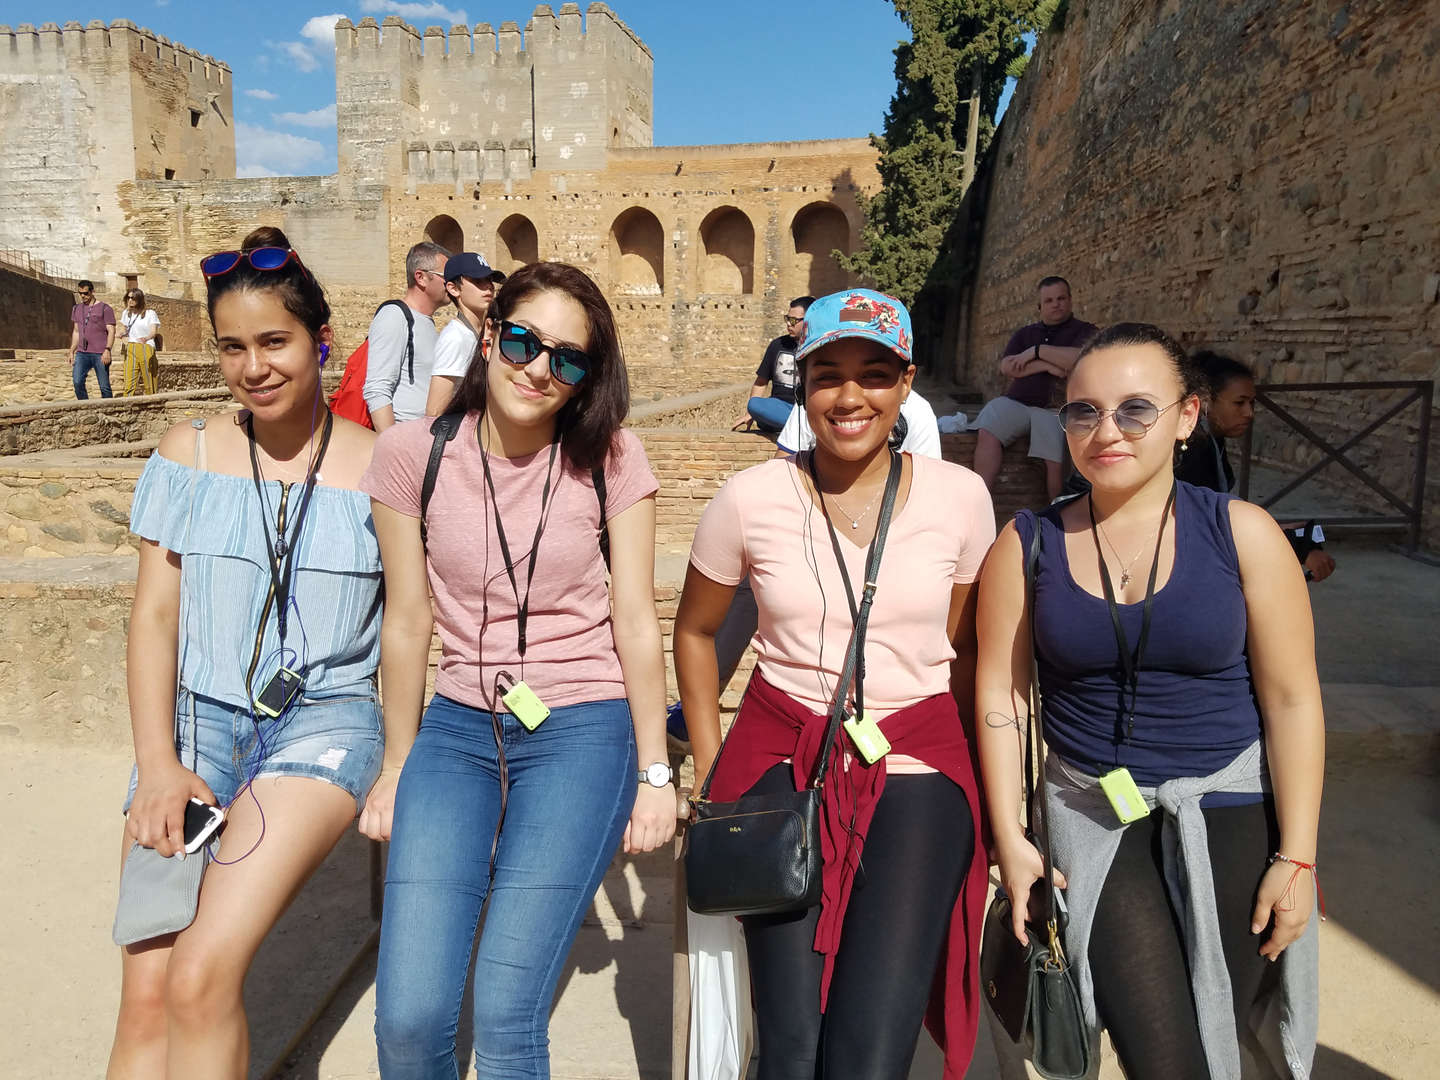 Students at Ancient Ruins in Spain